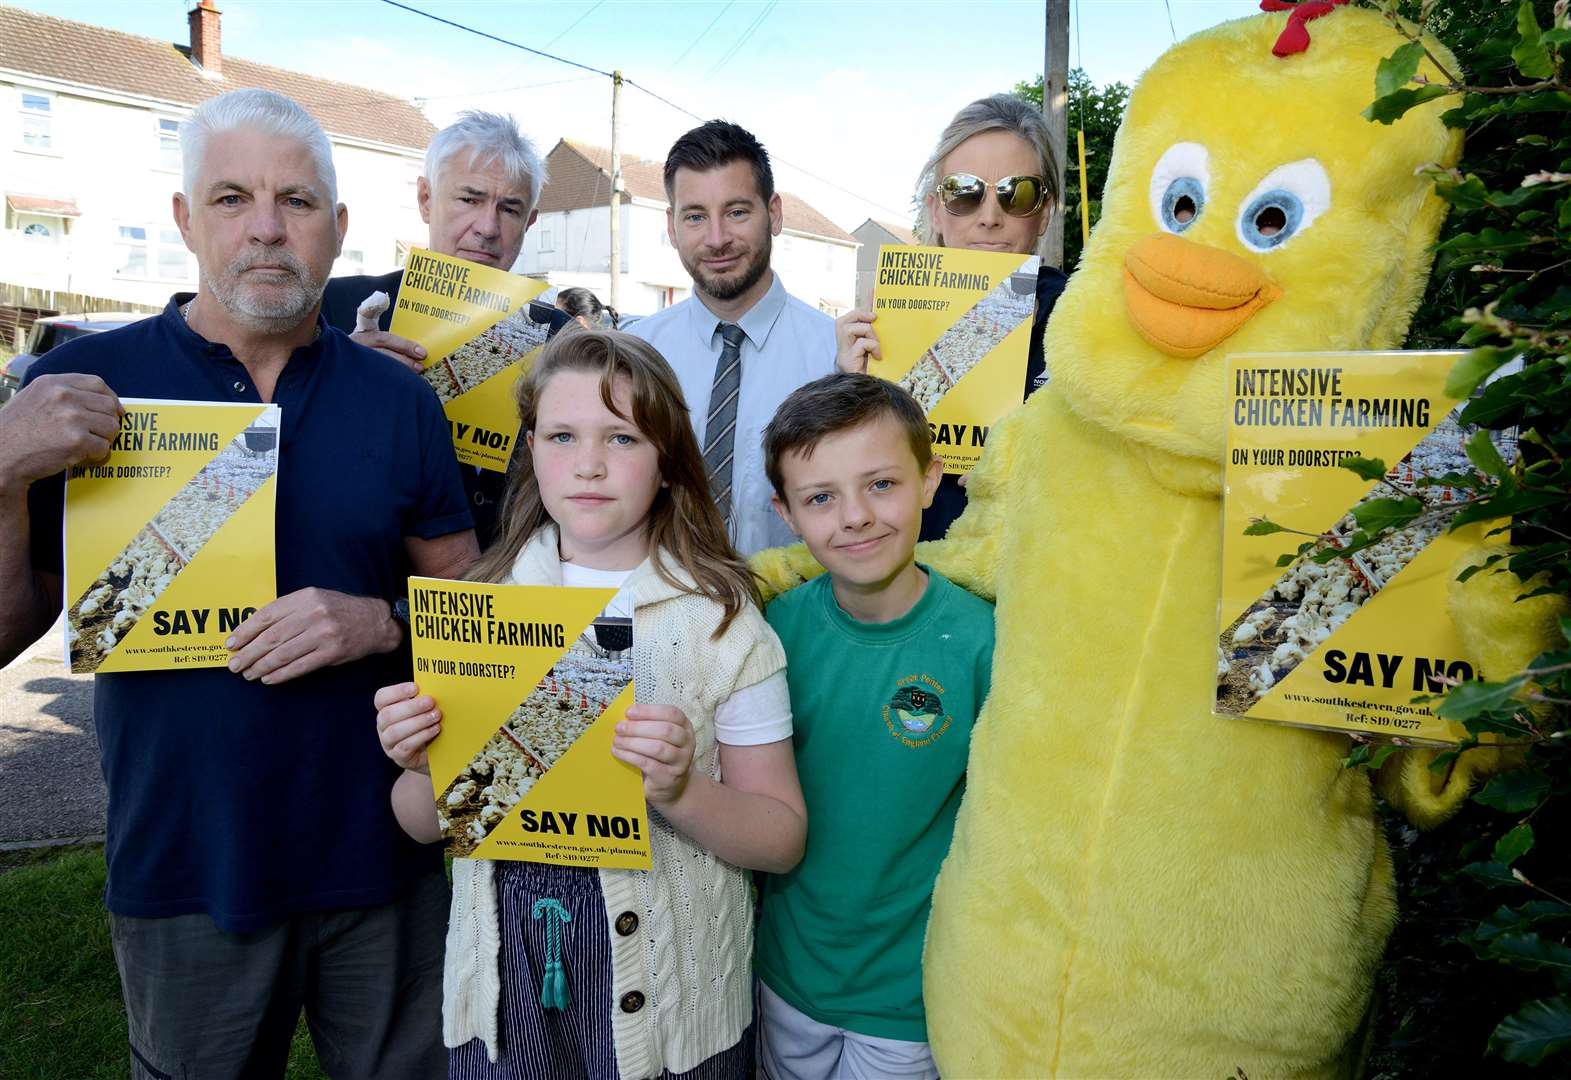 Controversial plan to farm 270,000 chickens near Grantham will go before committee